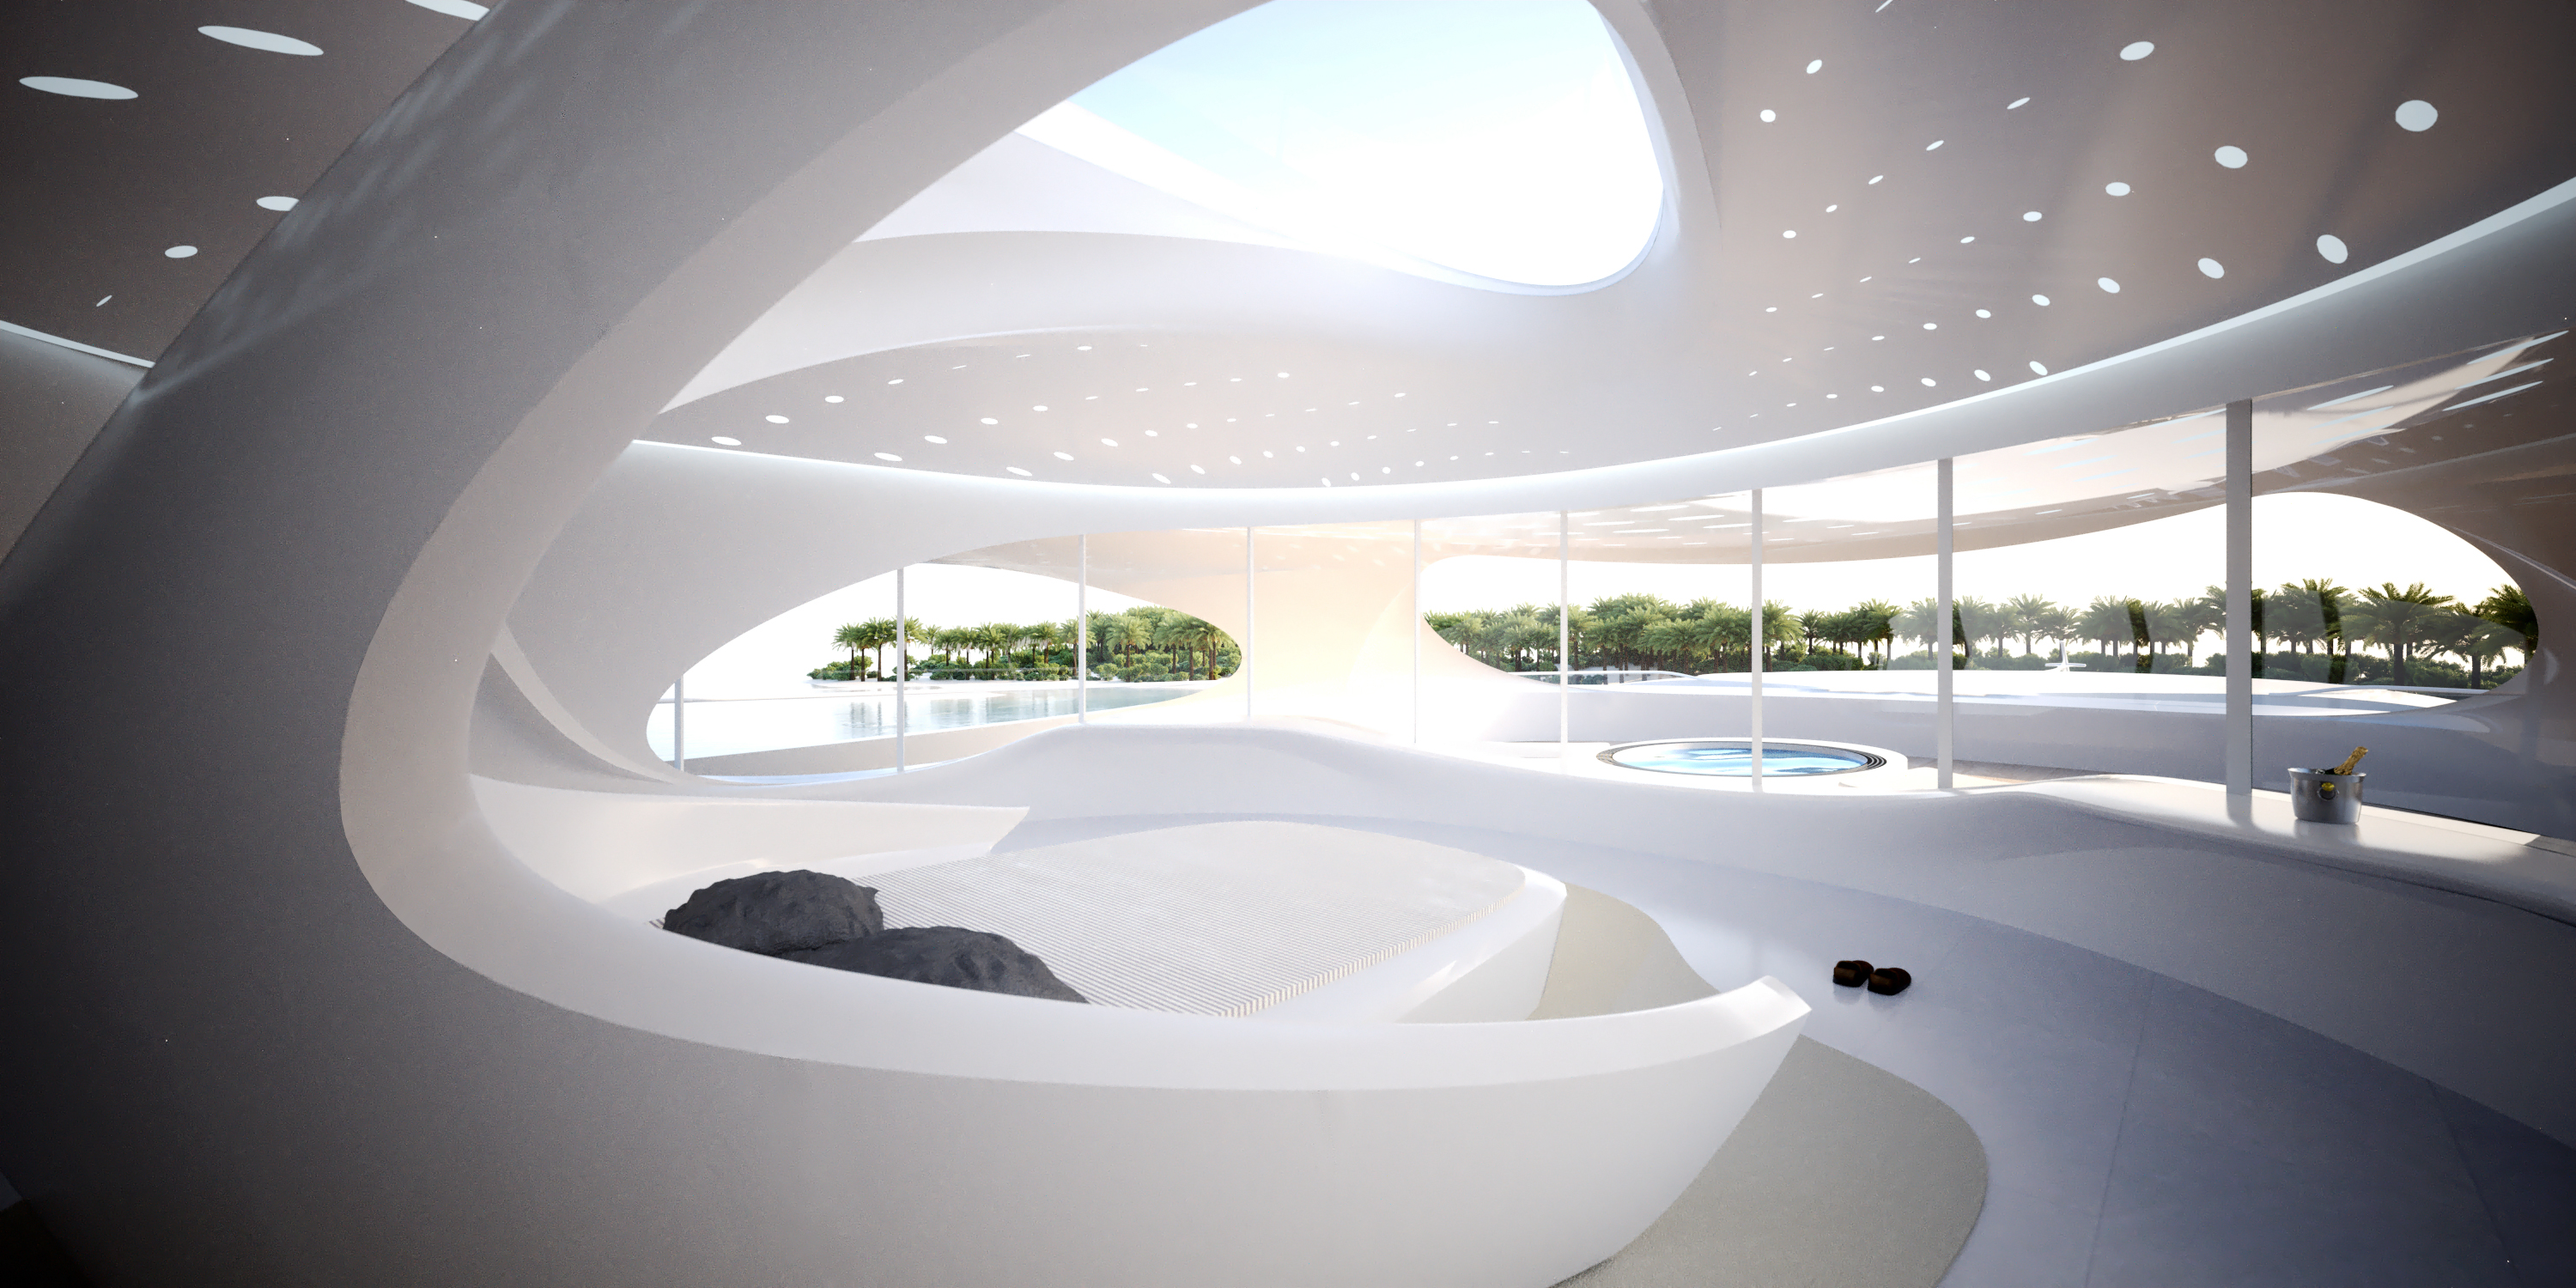 Zaha hadid superyacht interior google search ideas to for Interior design zaha hadid